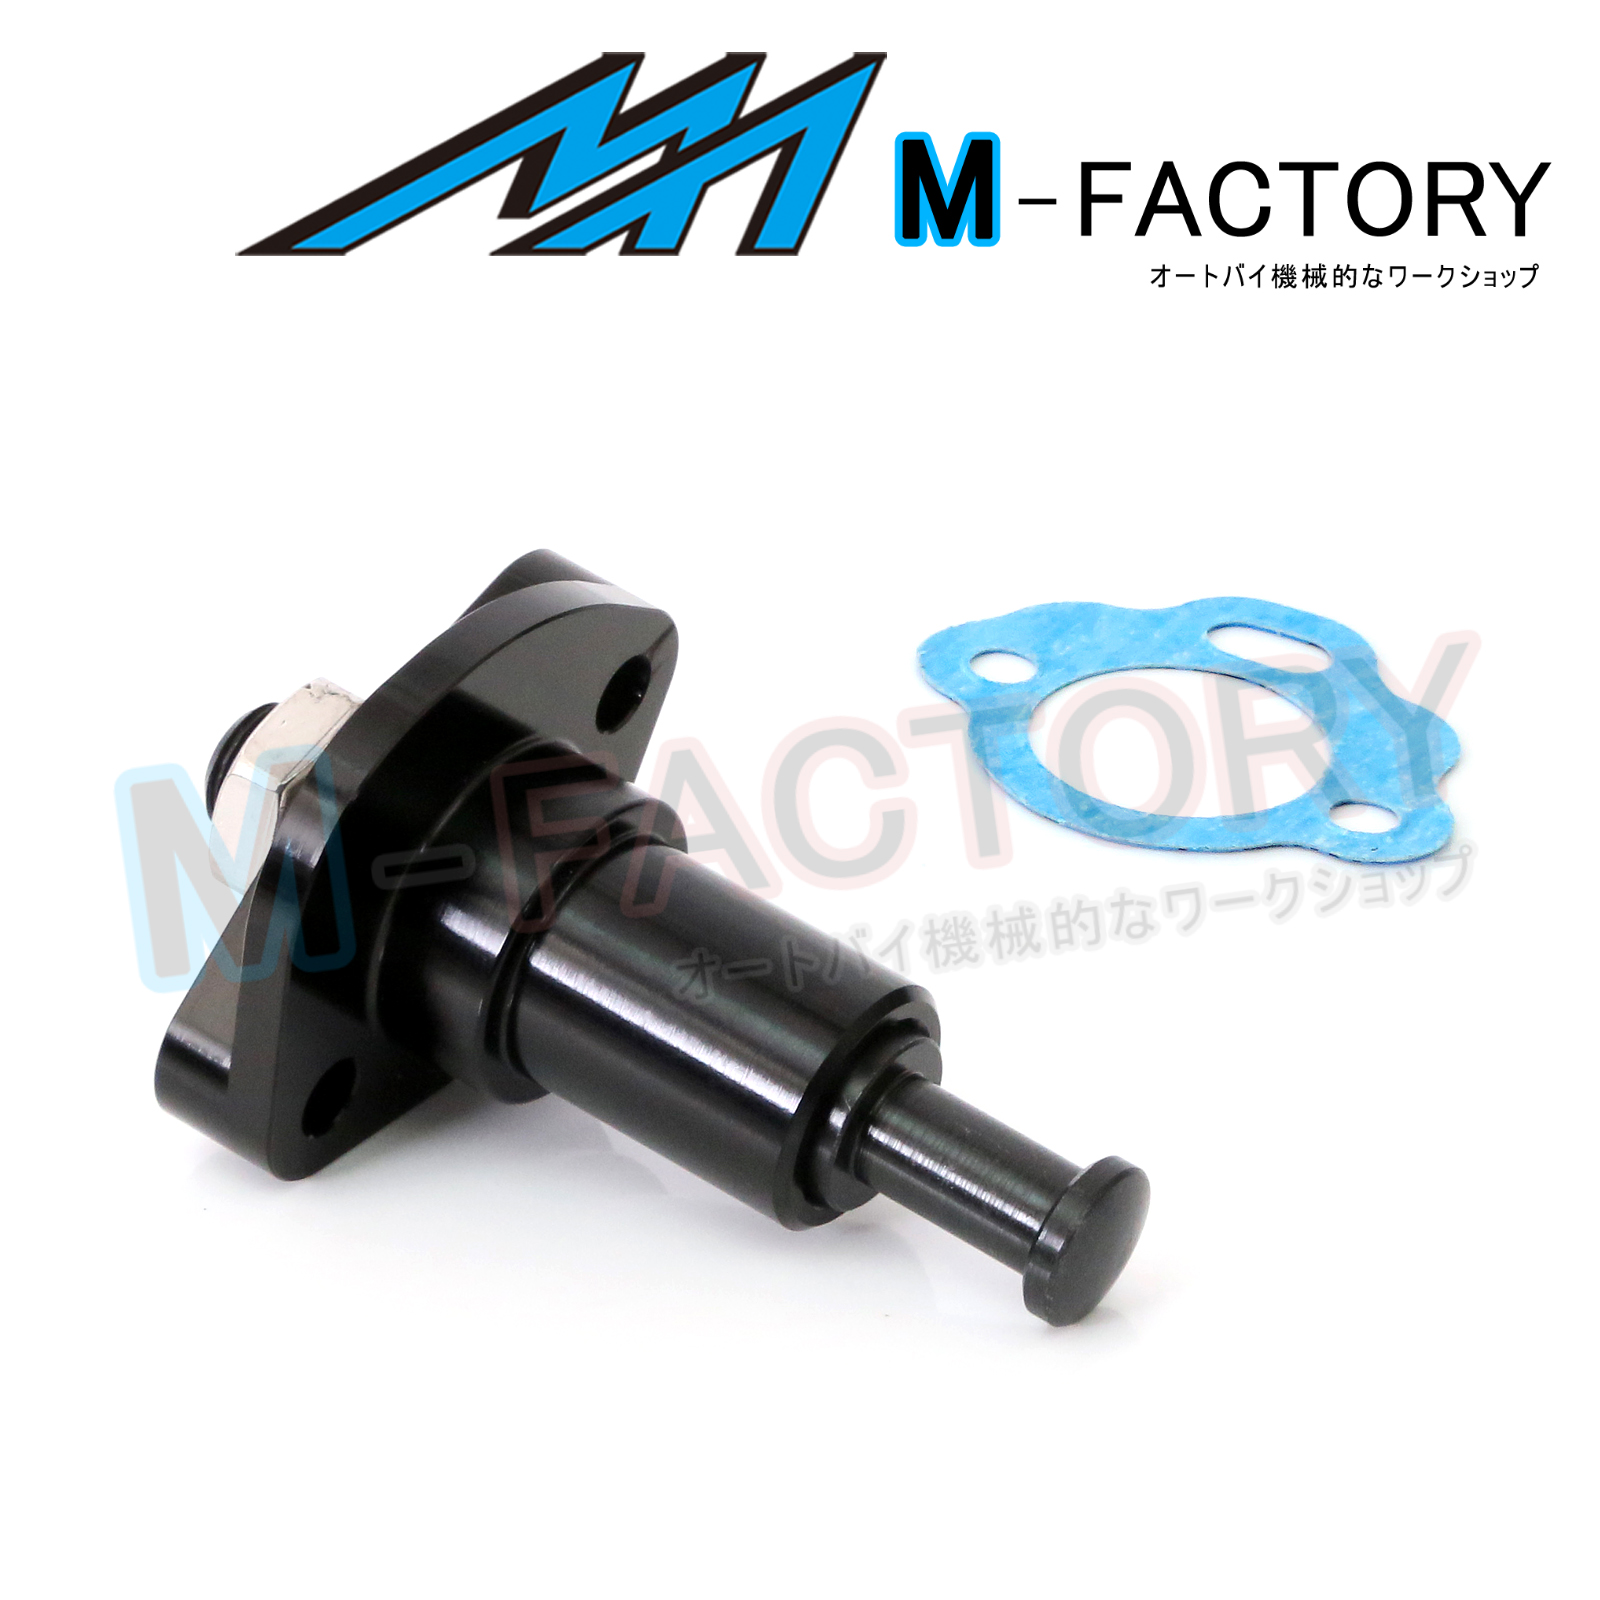 Black CNC Manual Cam Chain Tensioner For Suzuki GSX1300R Hayabusa 08-16 09 10 11